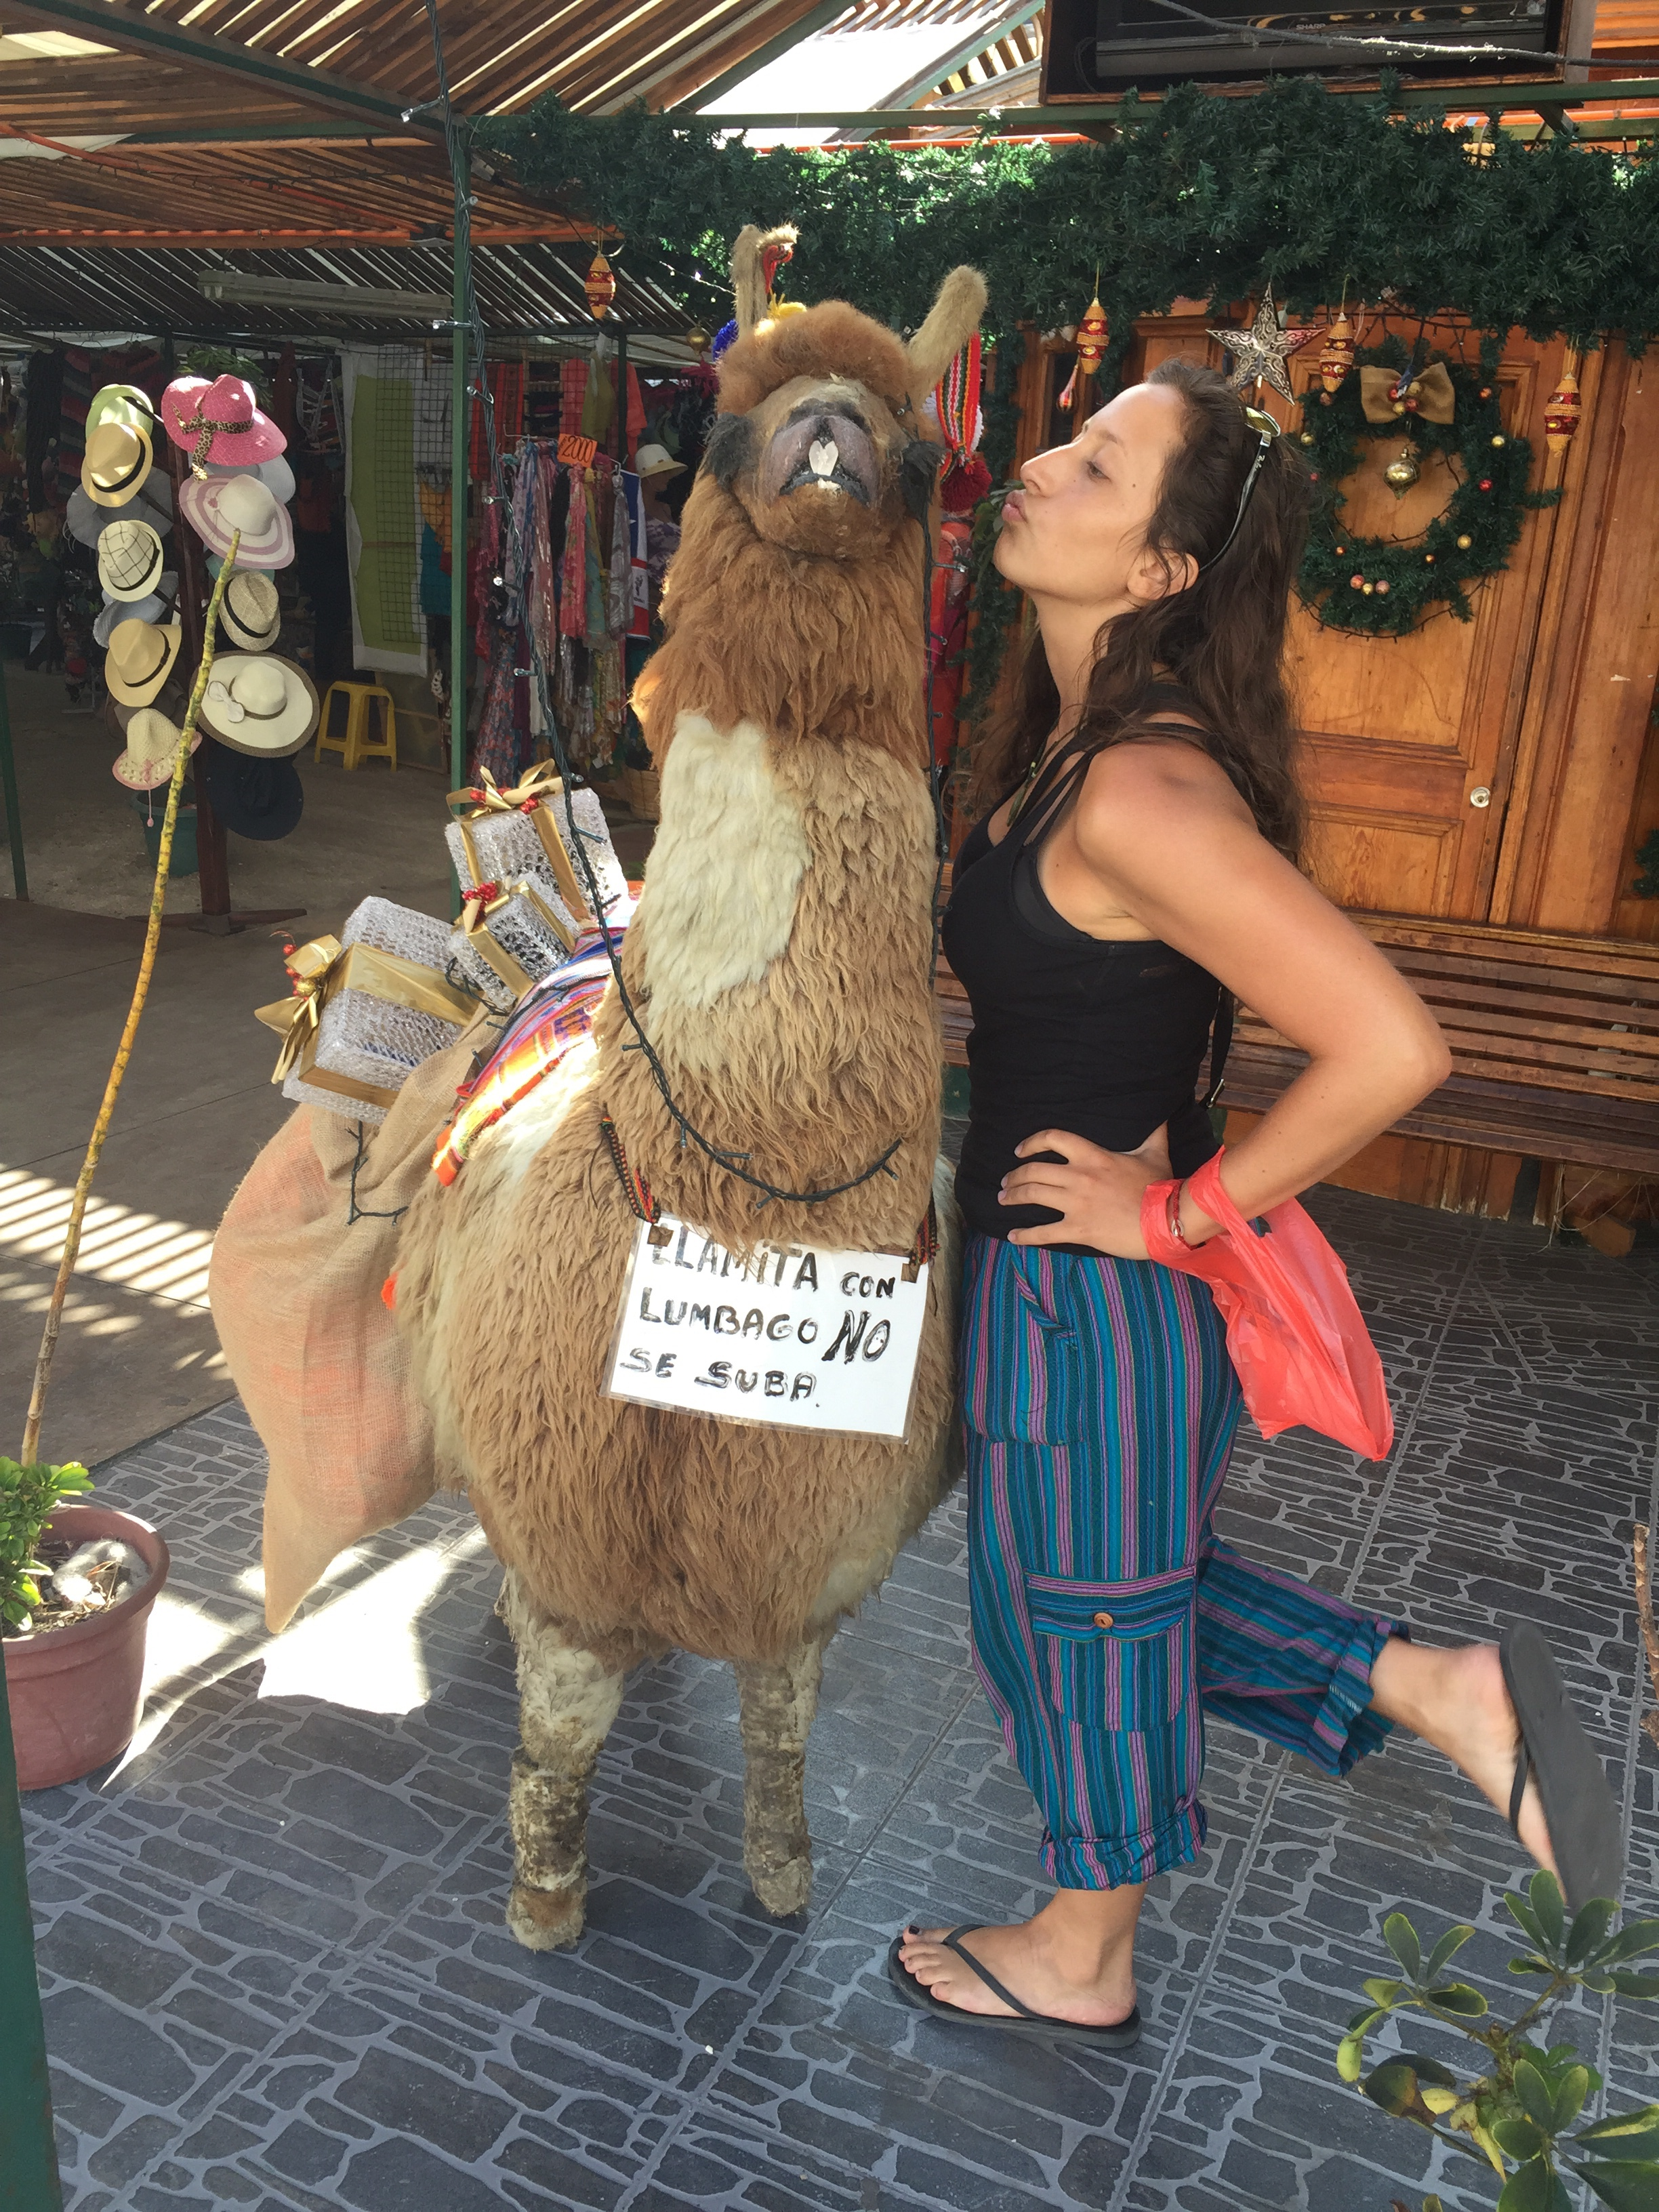 Llamas in Chile are like cows in the US